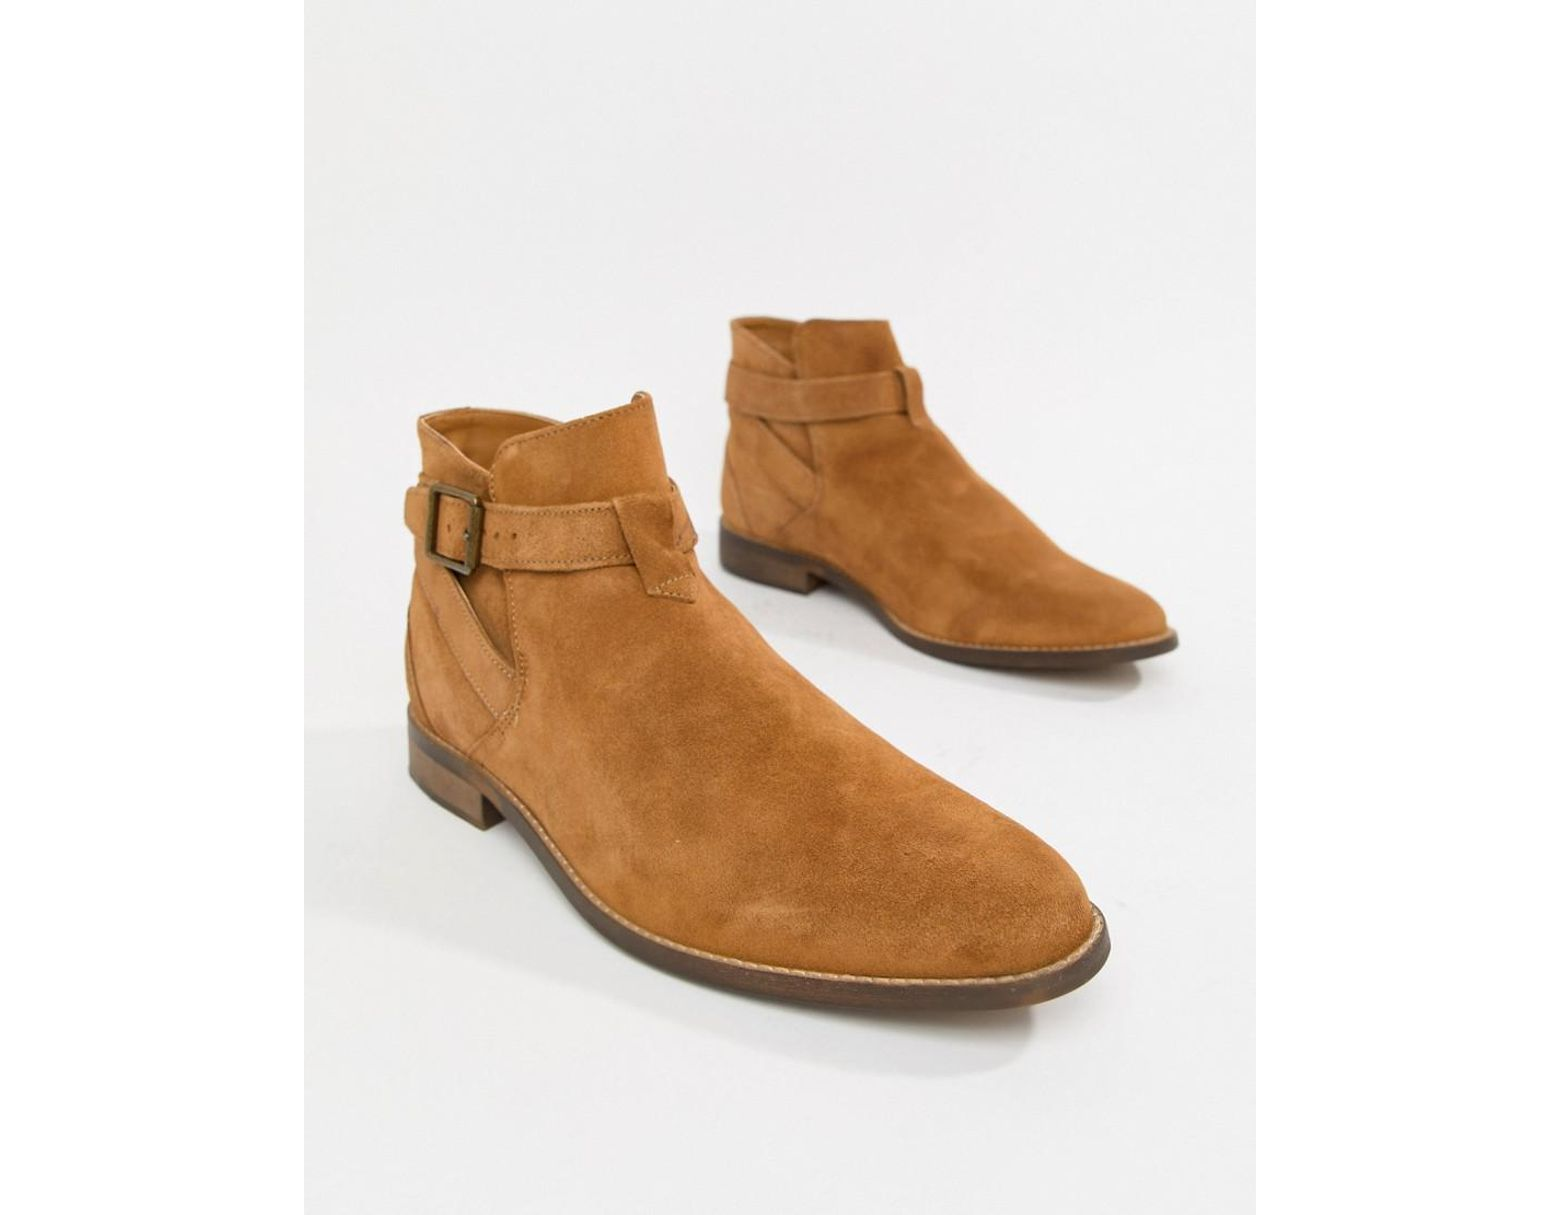 68e5a1a9b88 Men's Brown Suede Chelsea Boots In Tan